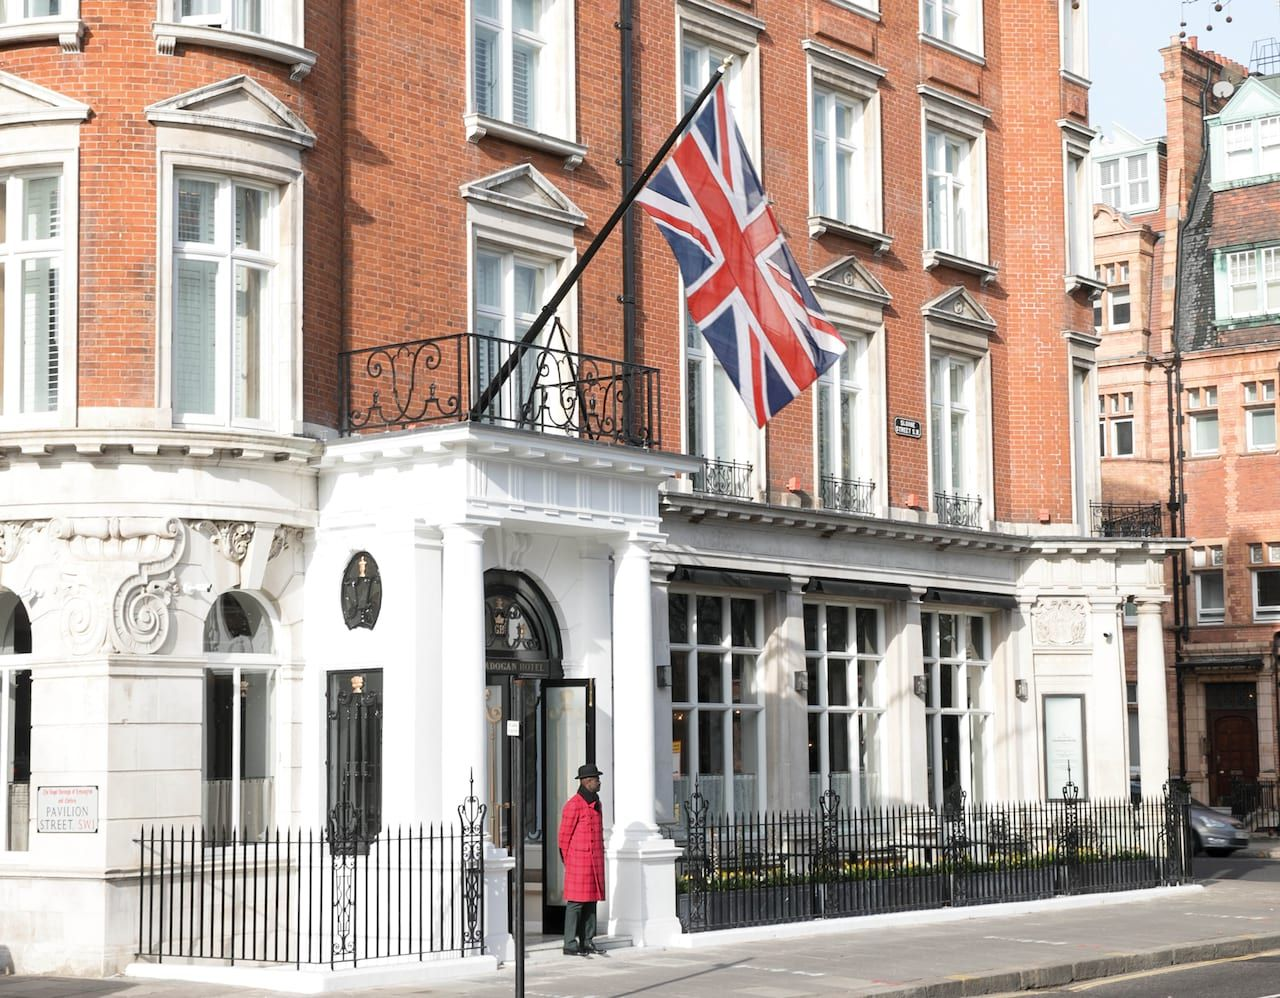 Belmond Hotel London - Spring Travel